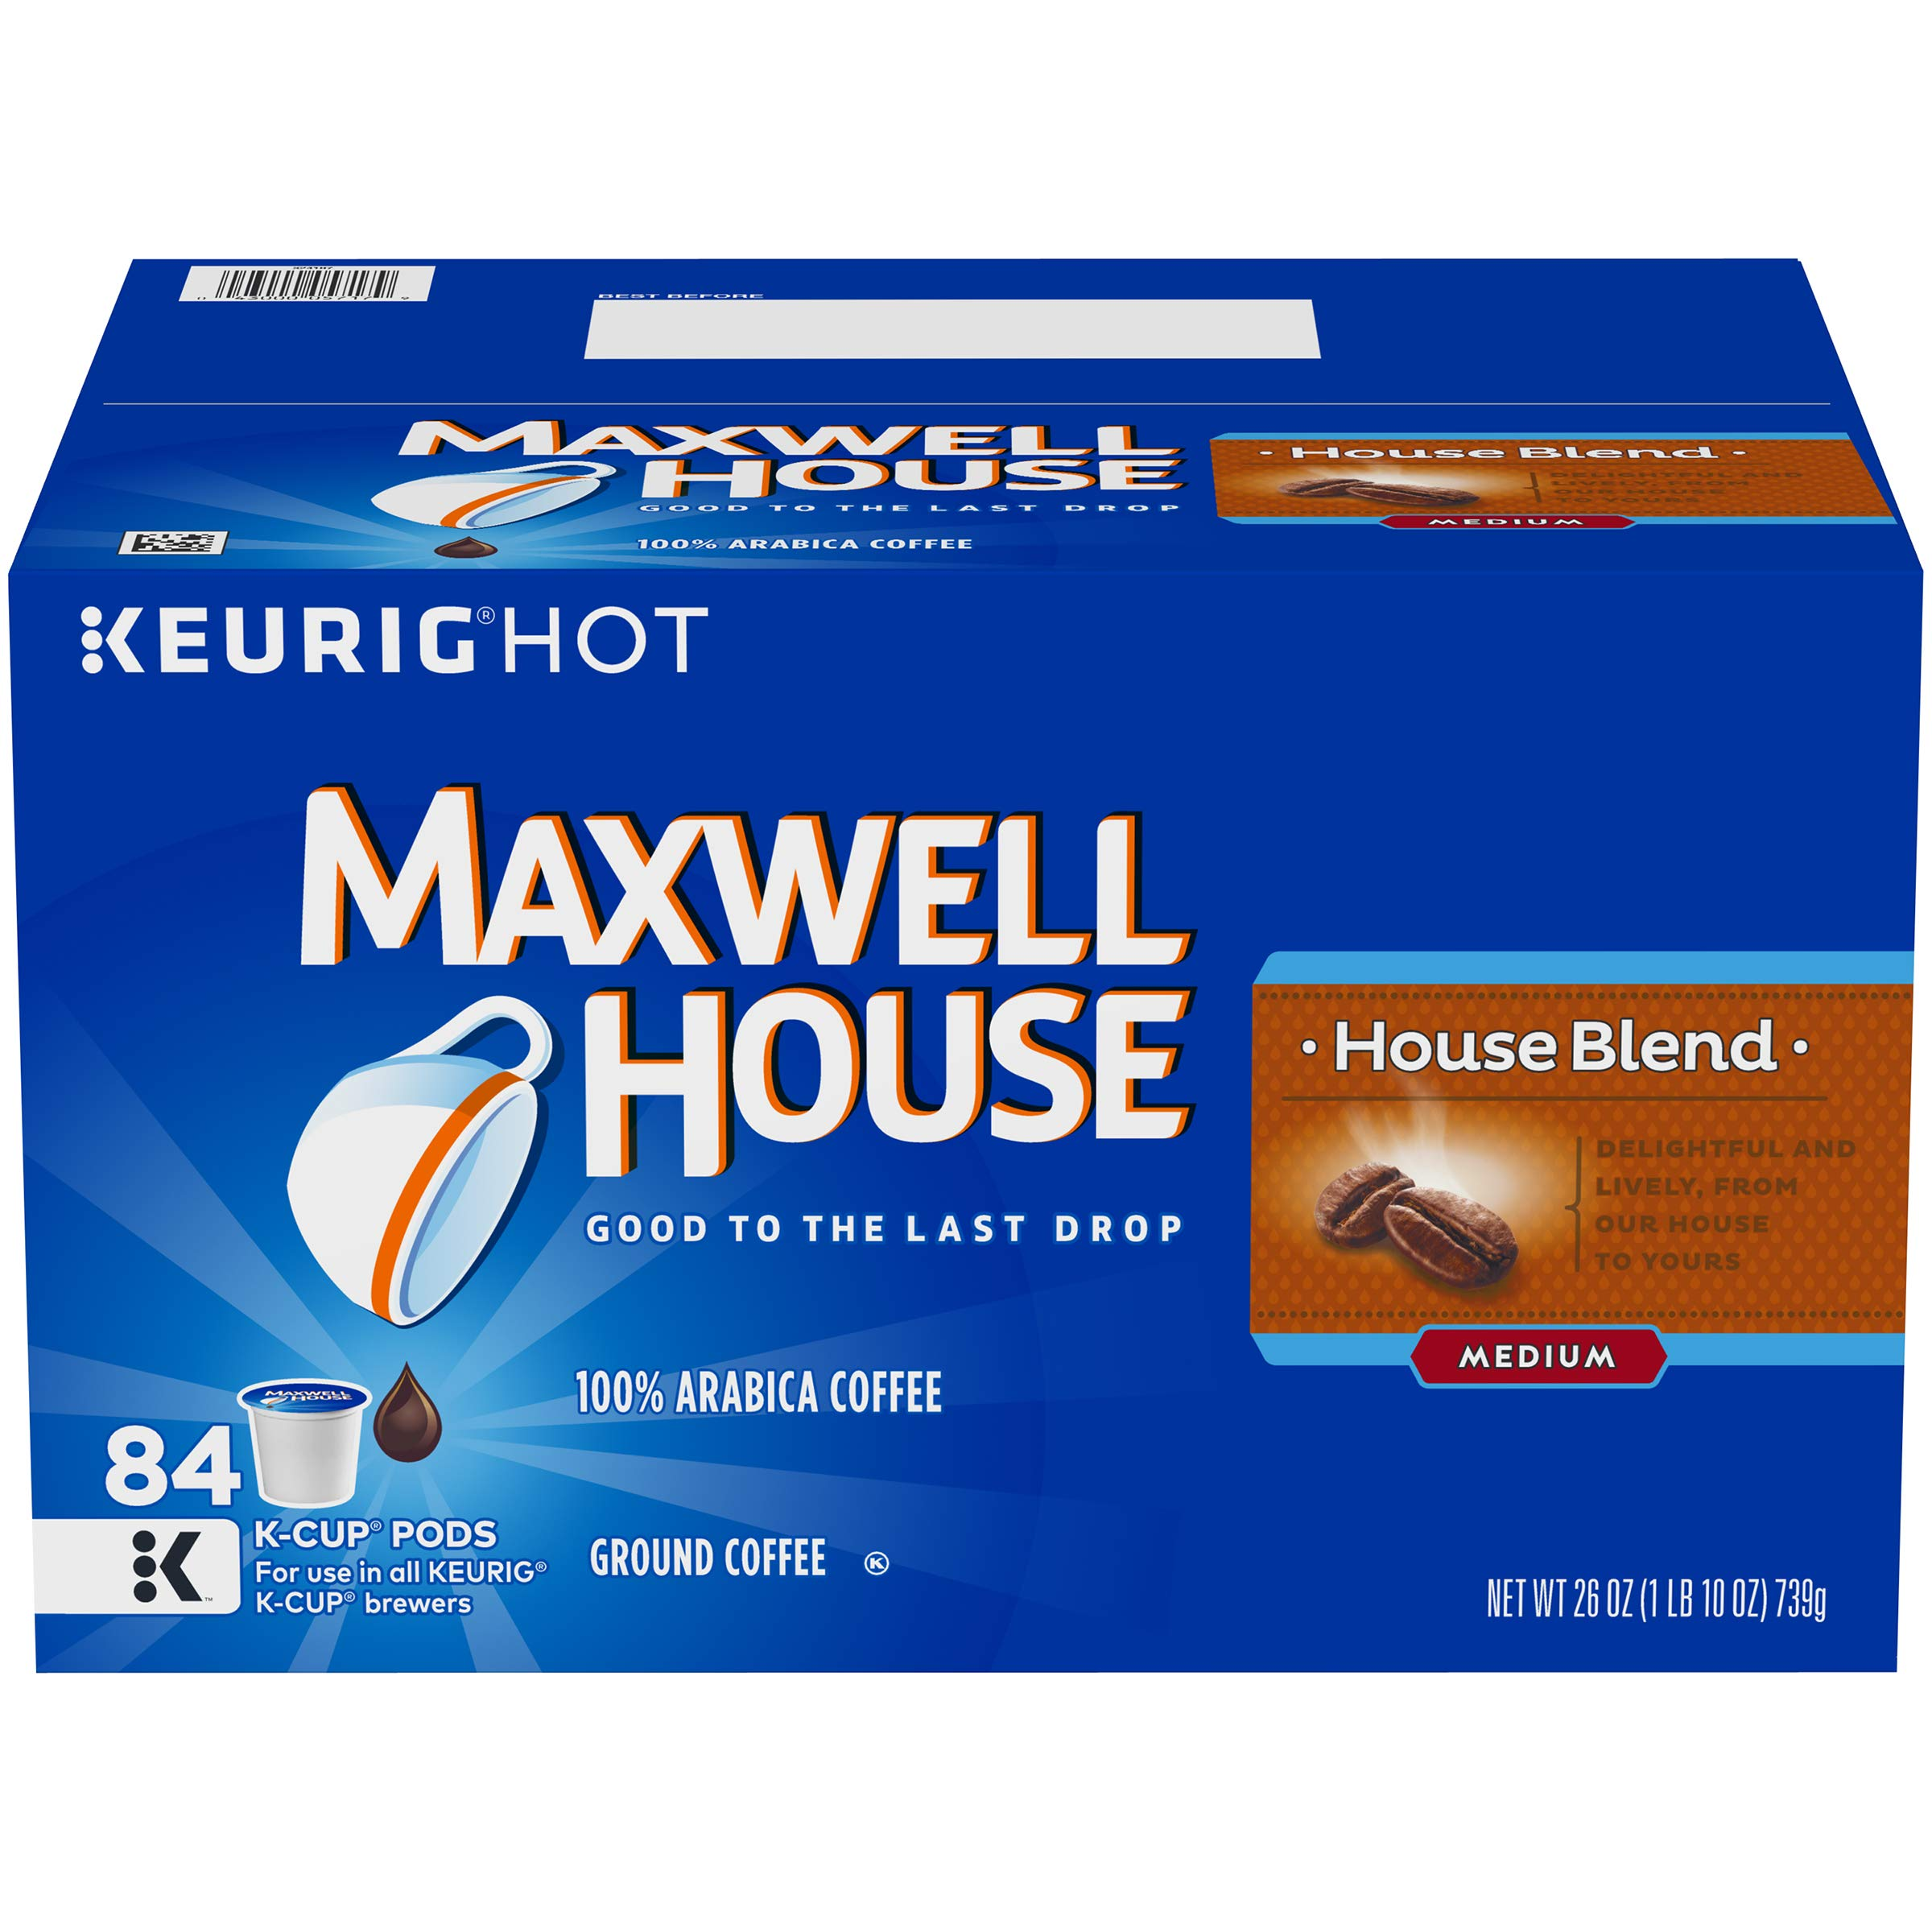 Maxwell House House Blend K-Cup Coffee Pods, 84 ct Box by MAXWELL HOUSE (Image #1)